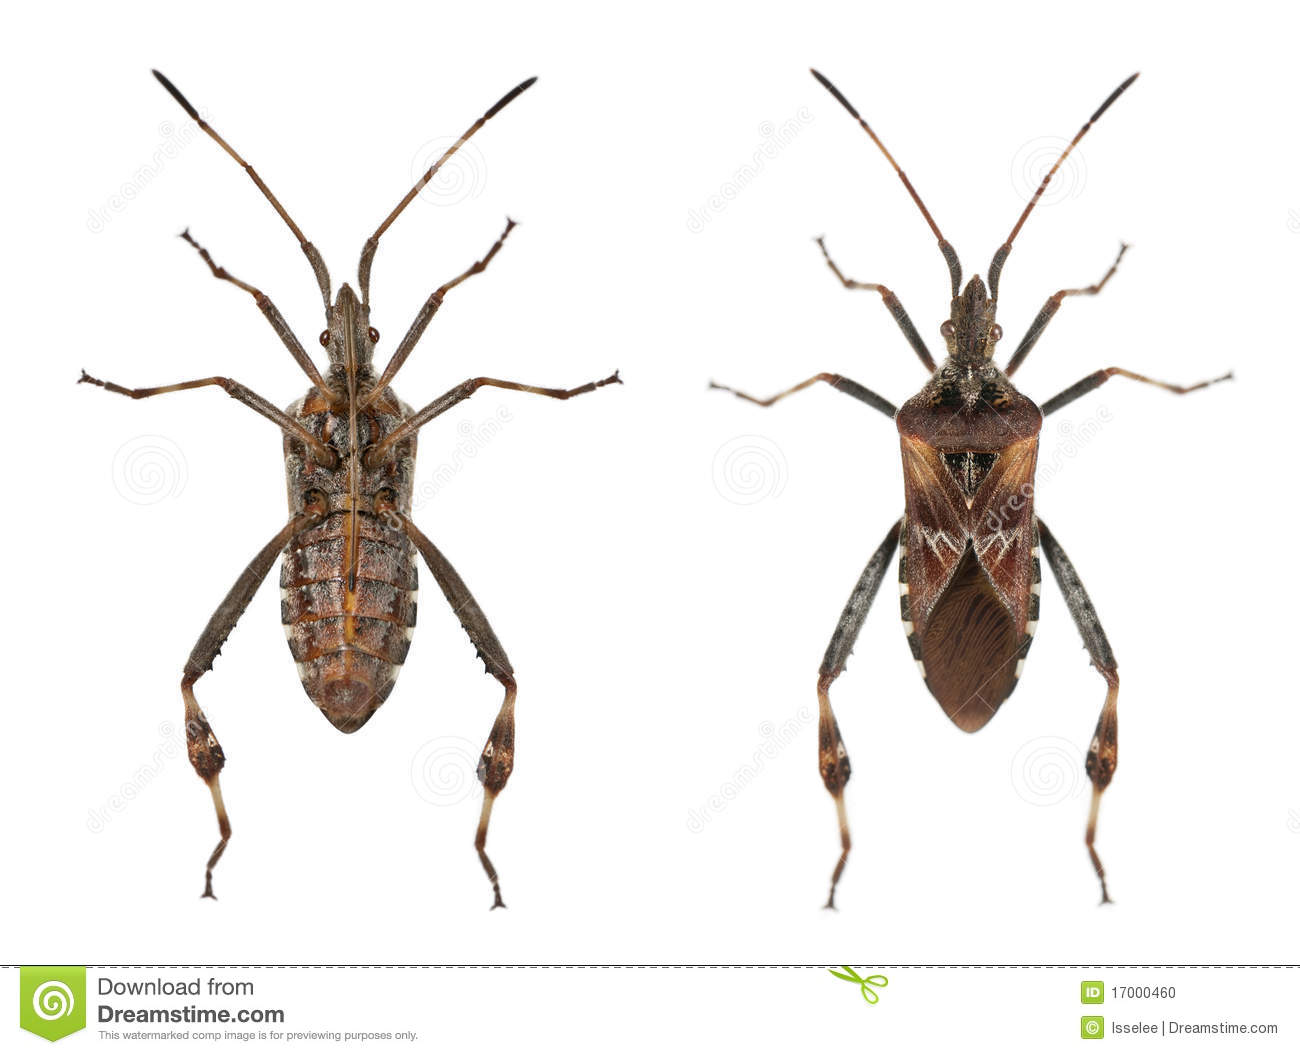 Western Conifer Seed Bugs Stock Photo.